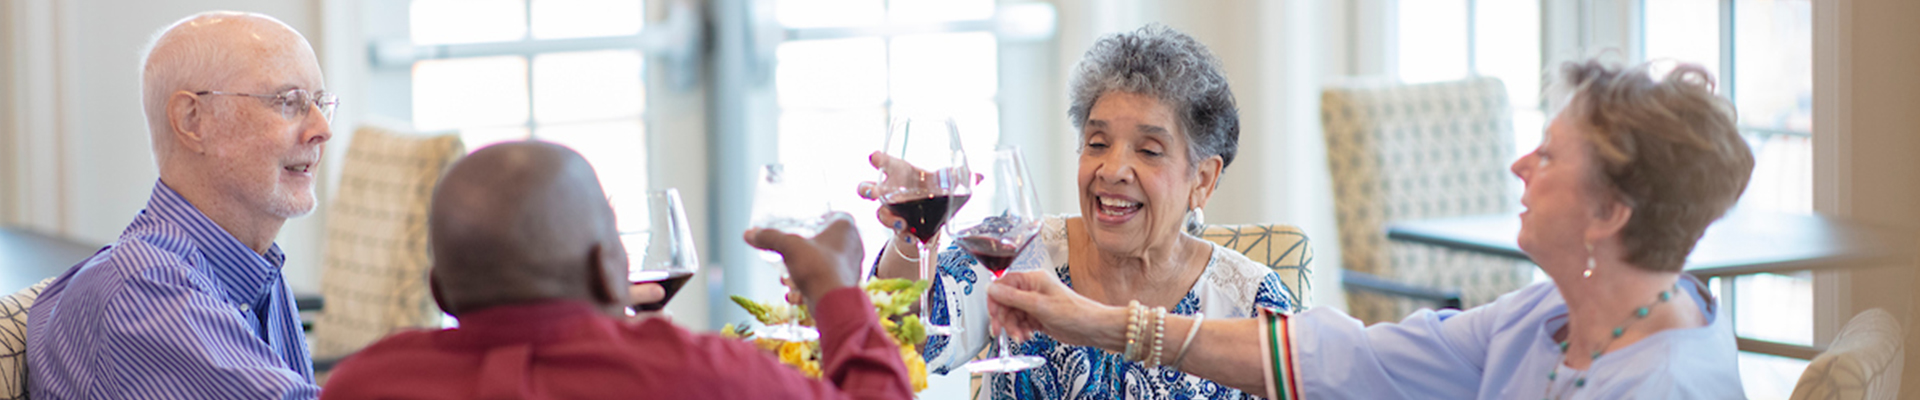 seniors toasting with their wine while at dinner